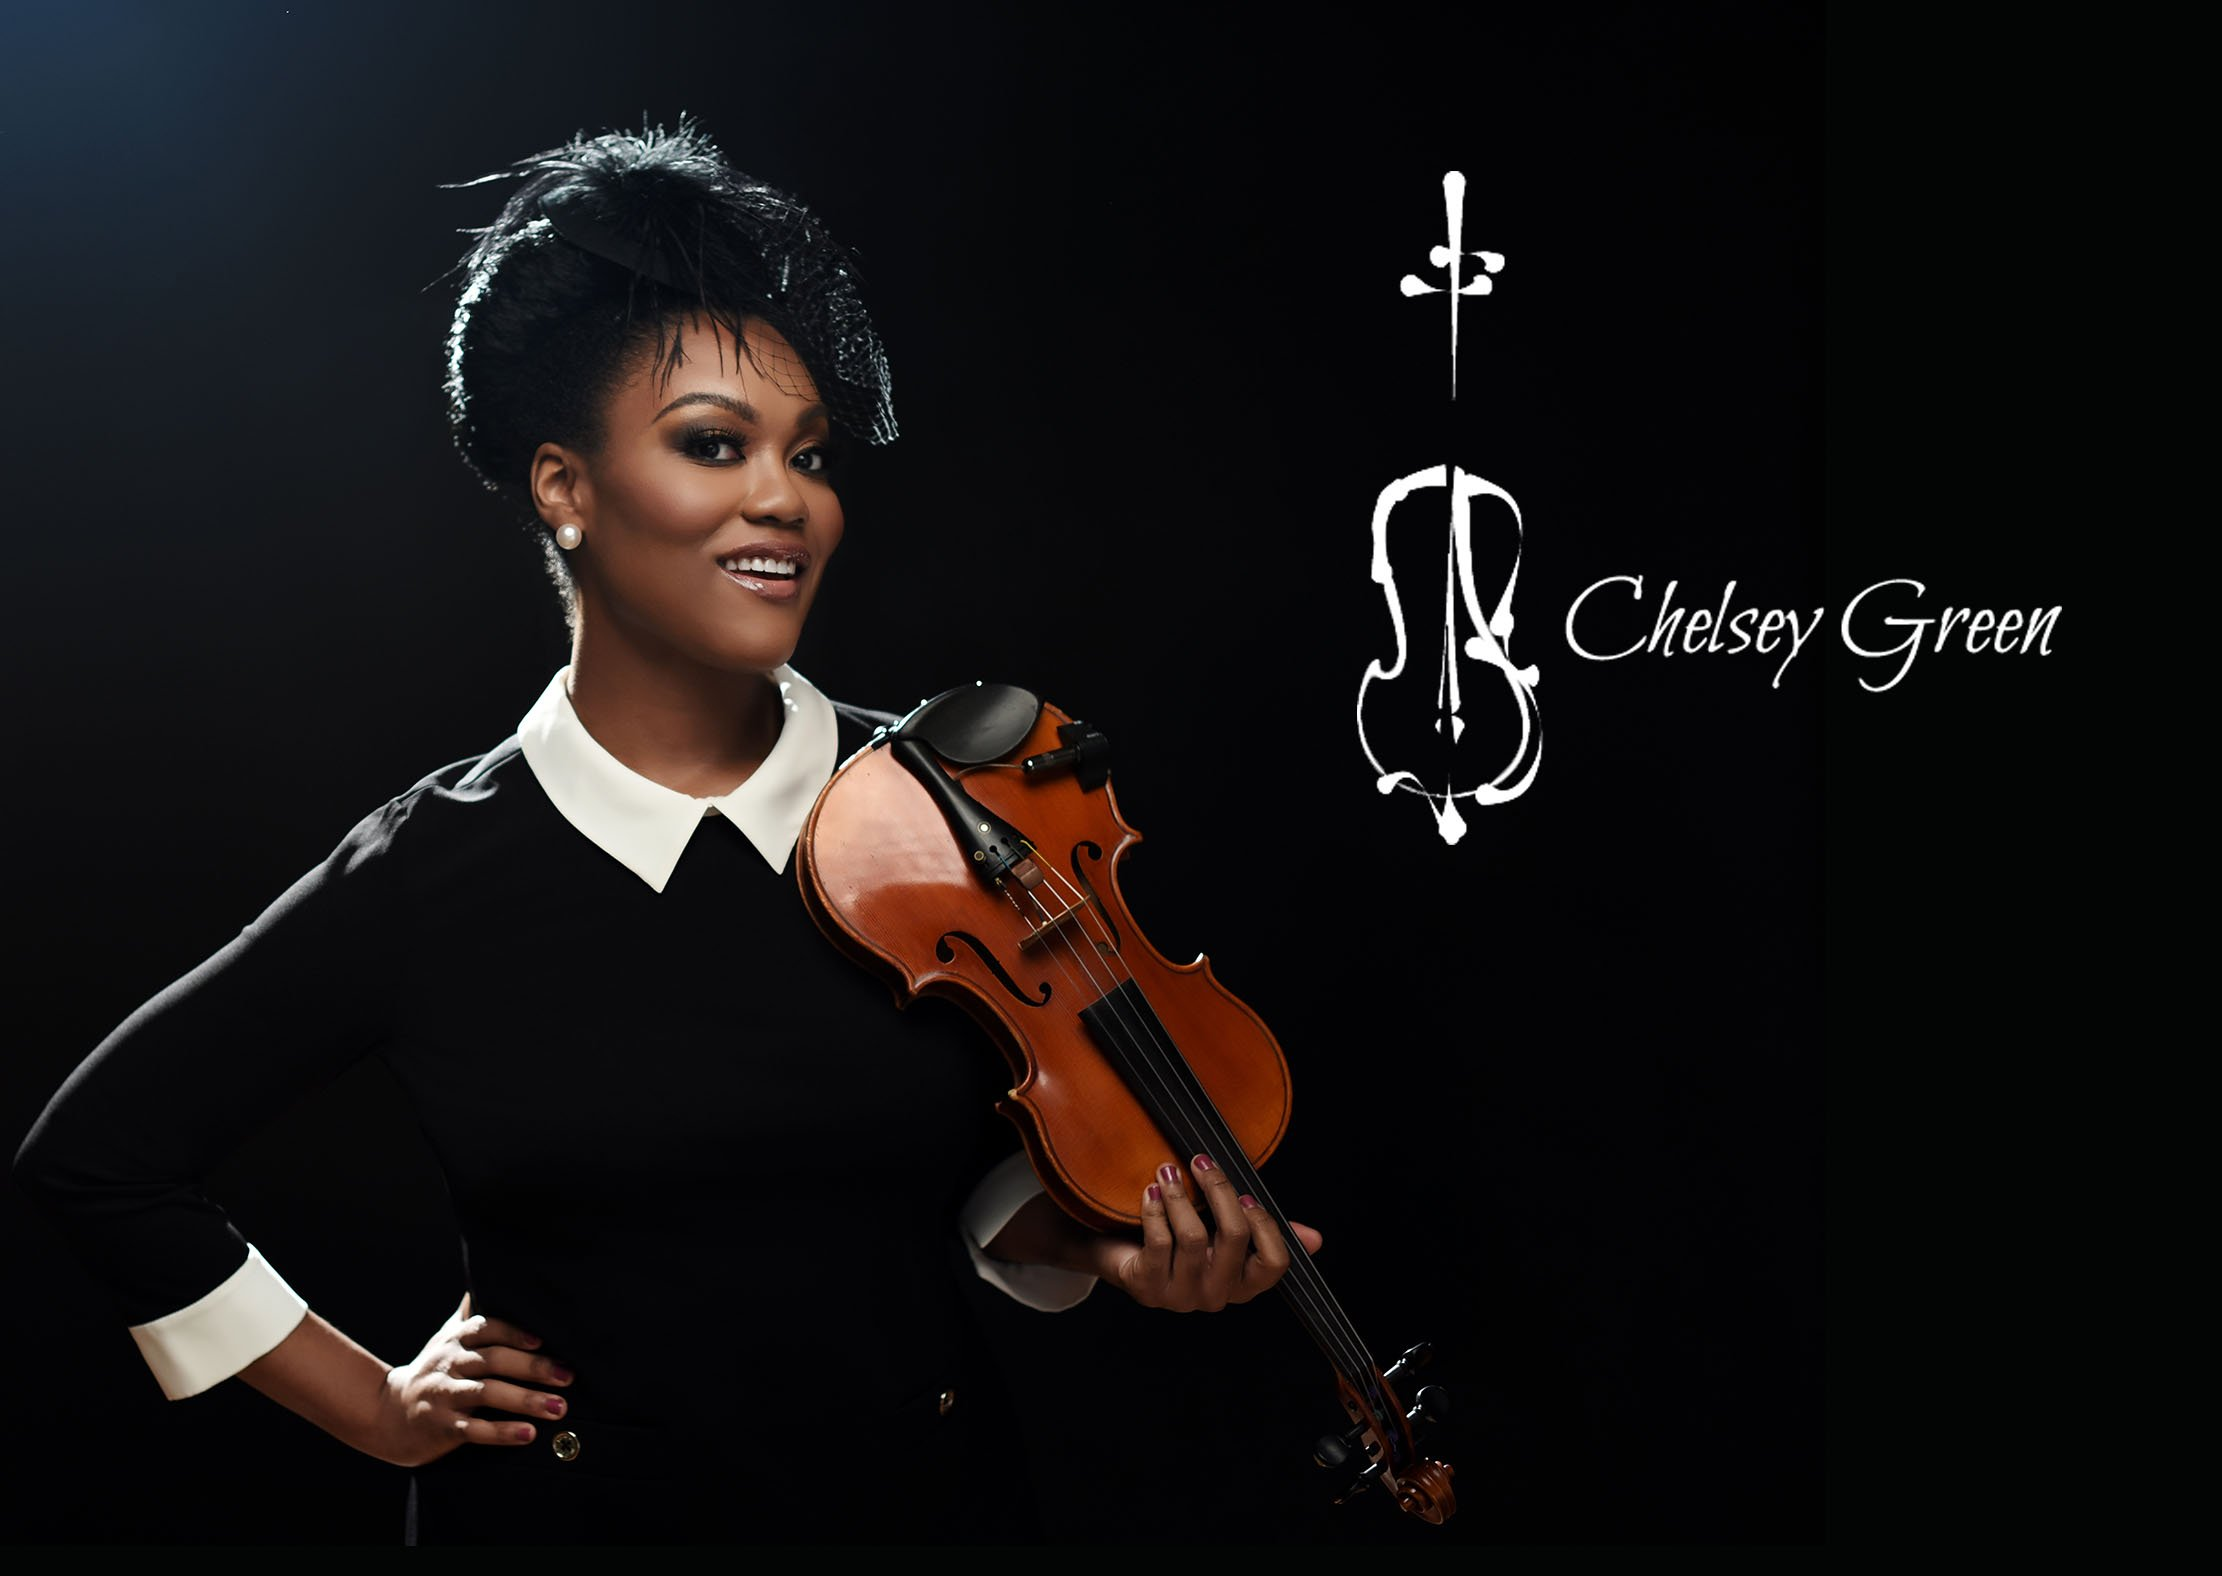 chelsey-green-violin-header-photo2